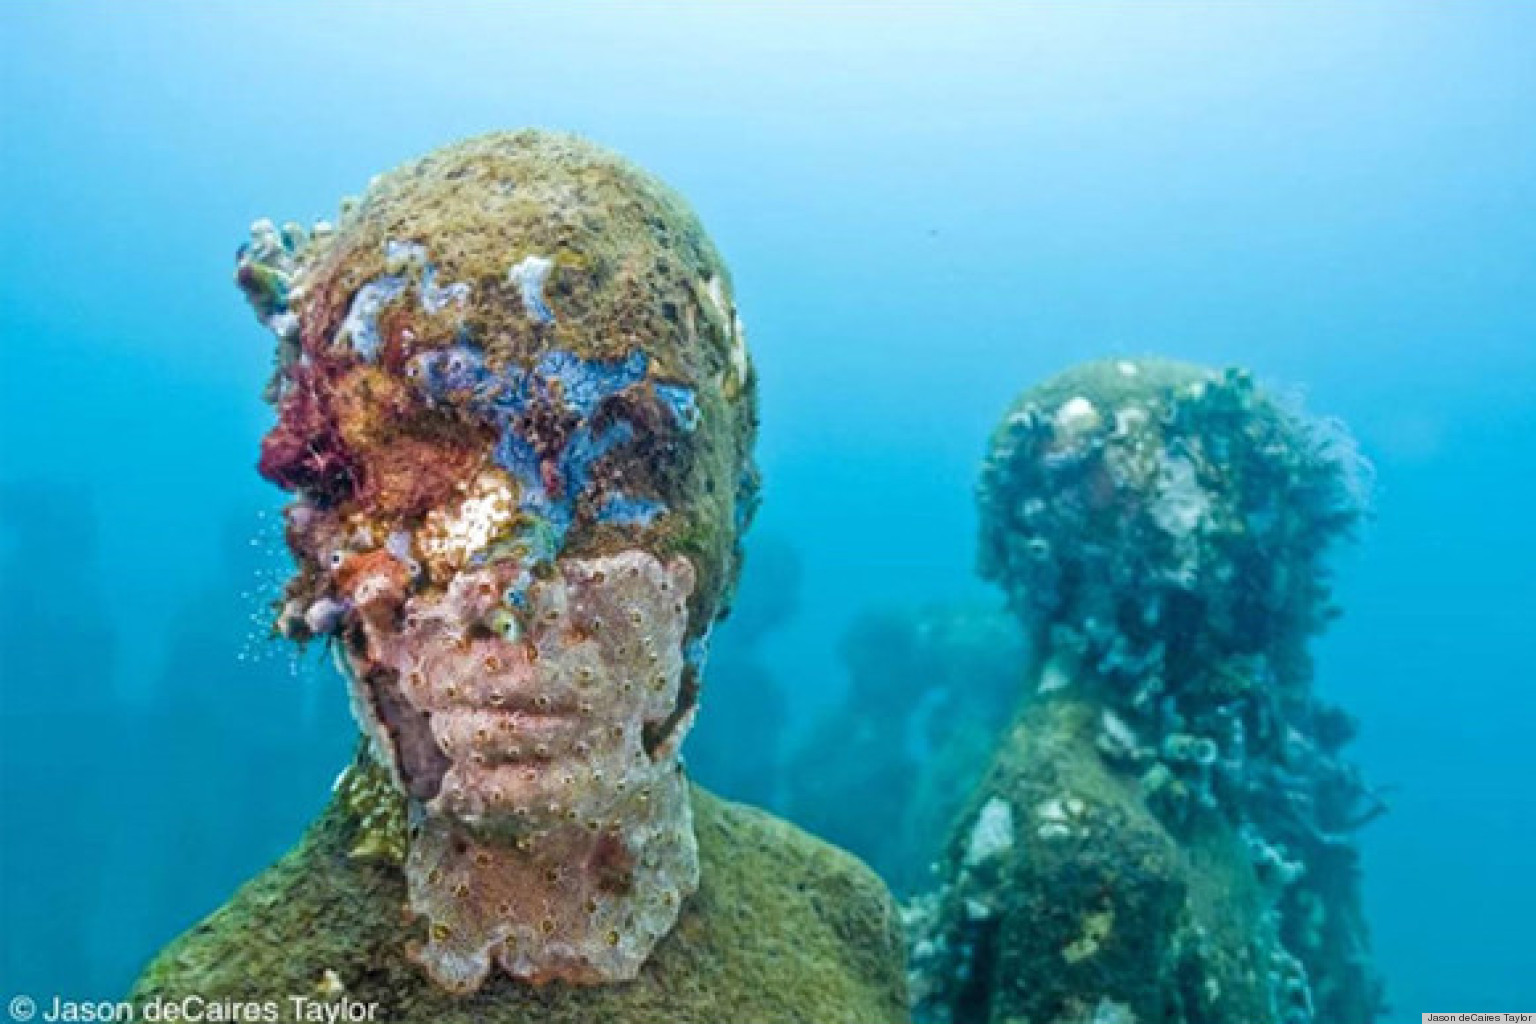 jason decaires taylor 39 s underwater art installation takes. Black Bedroom Furniture Sets. Home Design Ideas